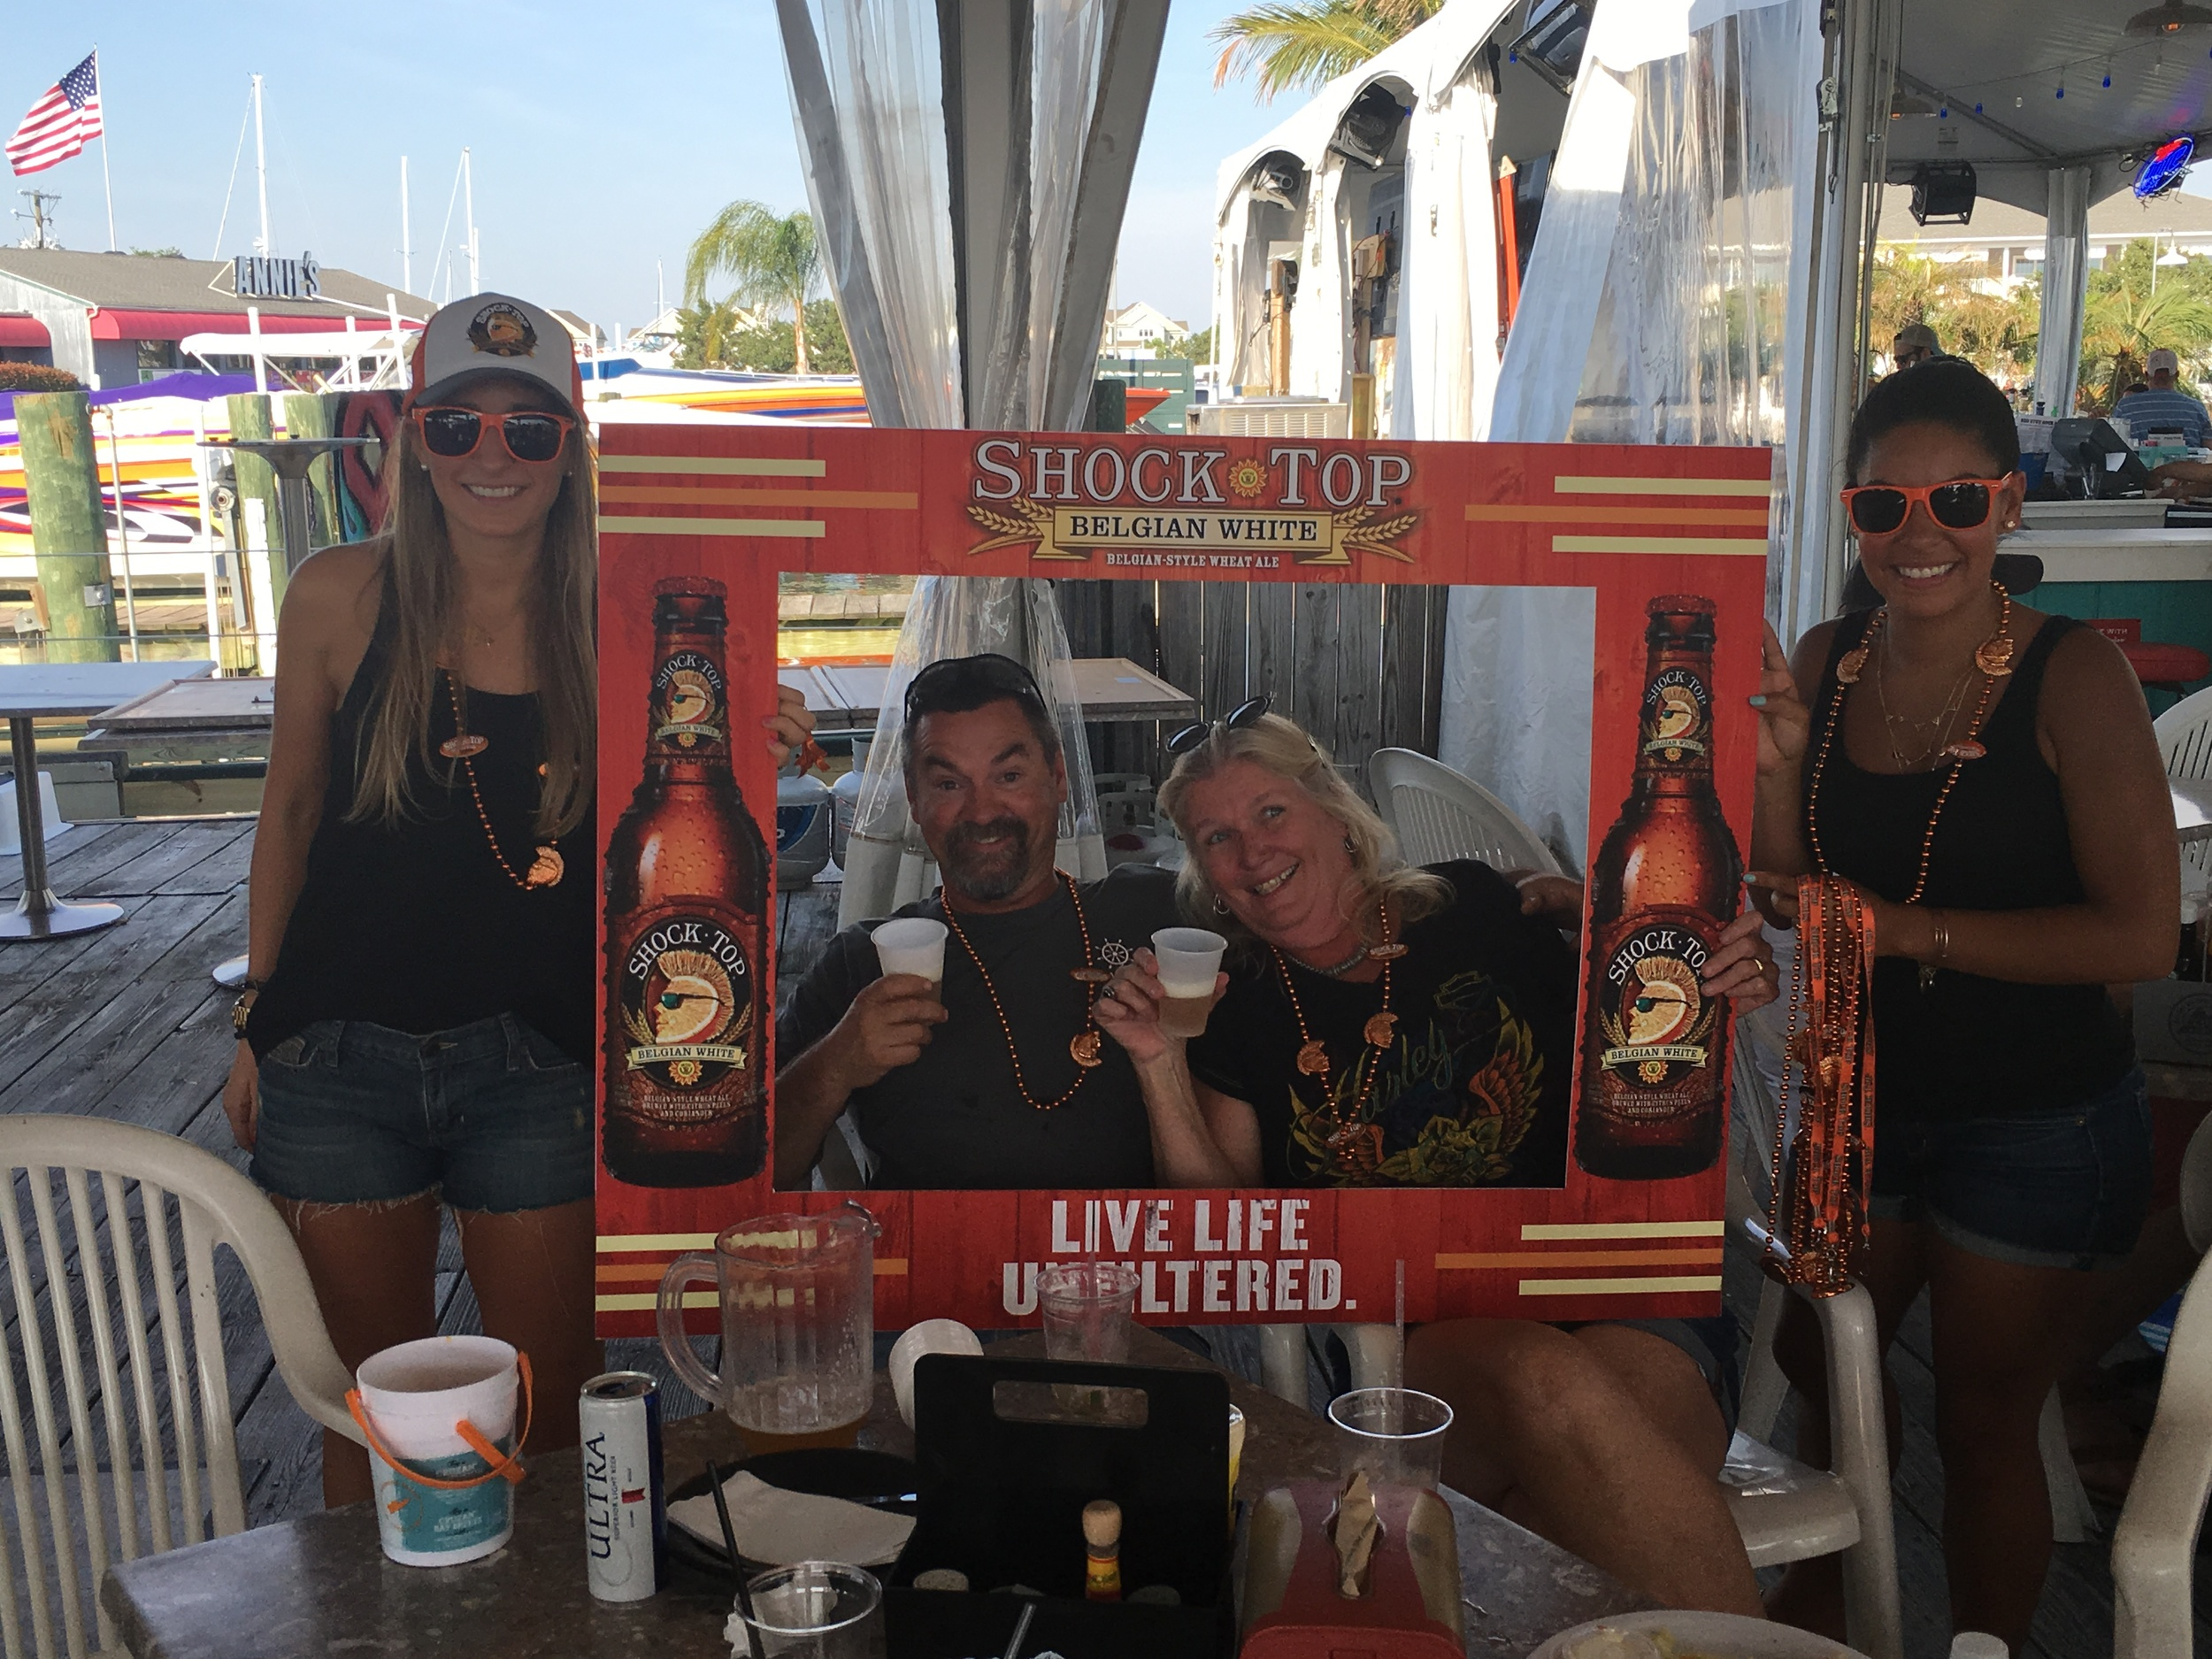 Shock Top Promotion at Red Eyes 6.11.16